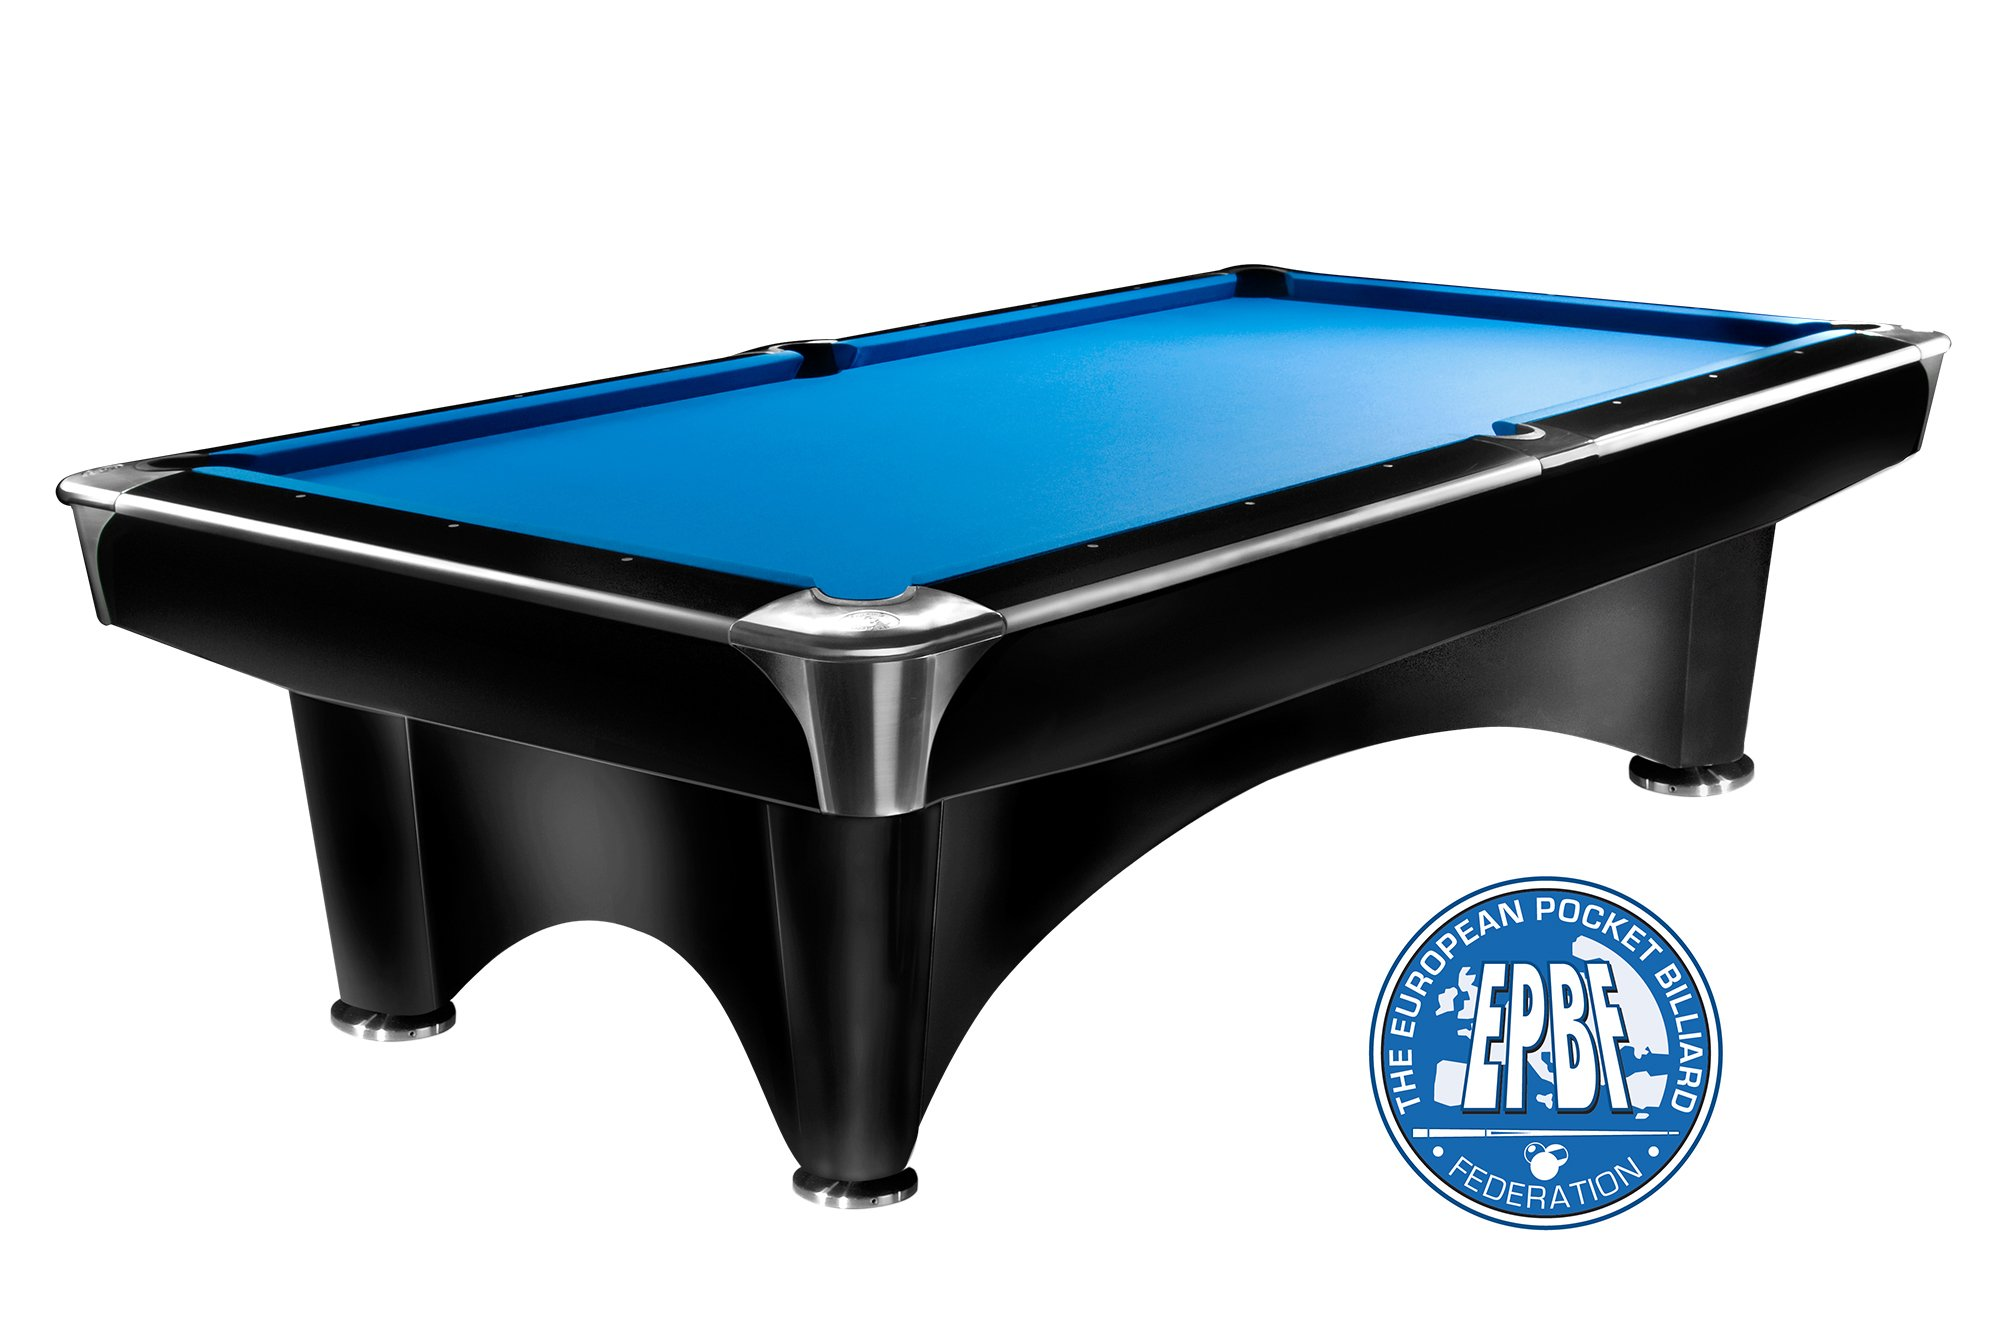 Mesa de Billar Dynamic III, 9 ft. (Soporte), Negro, Pool: Amazon ...